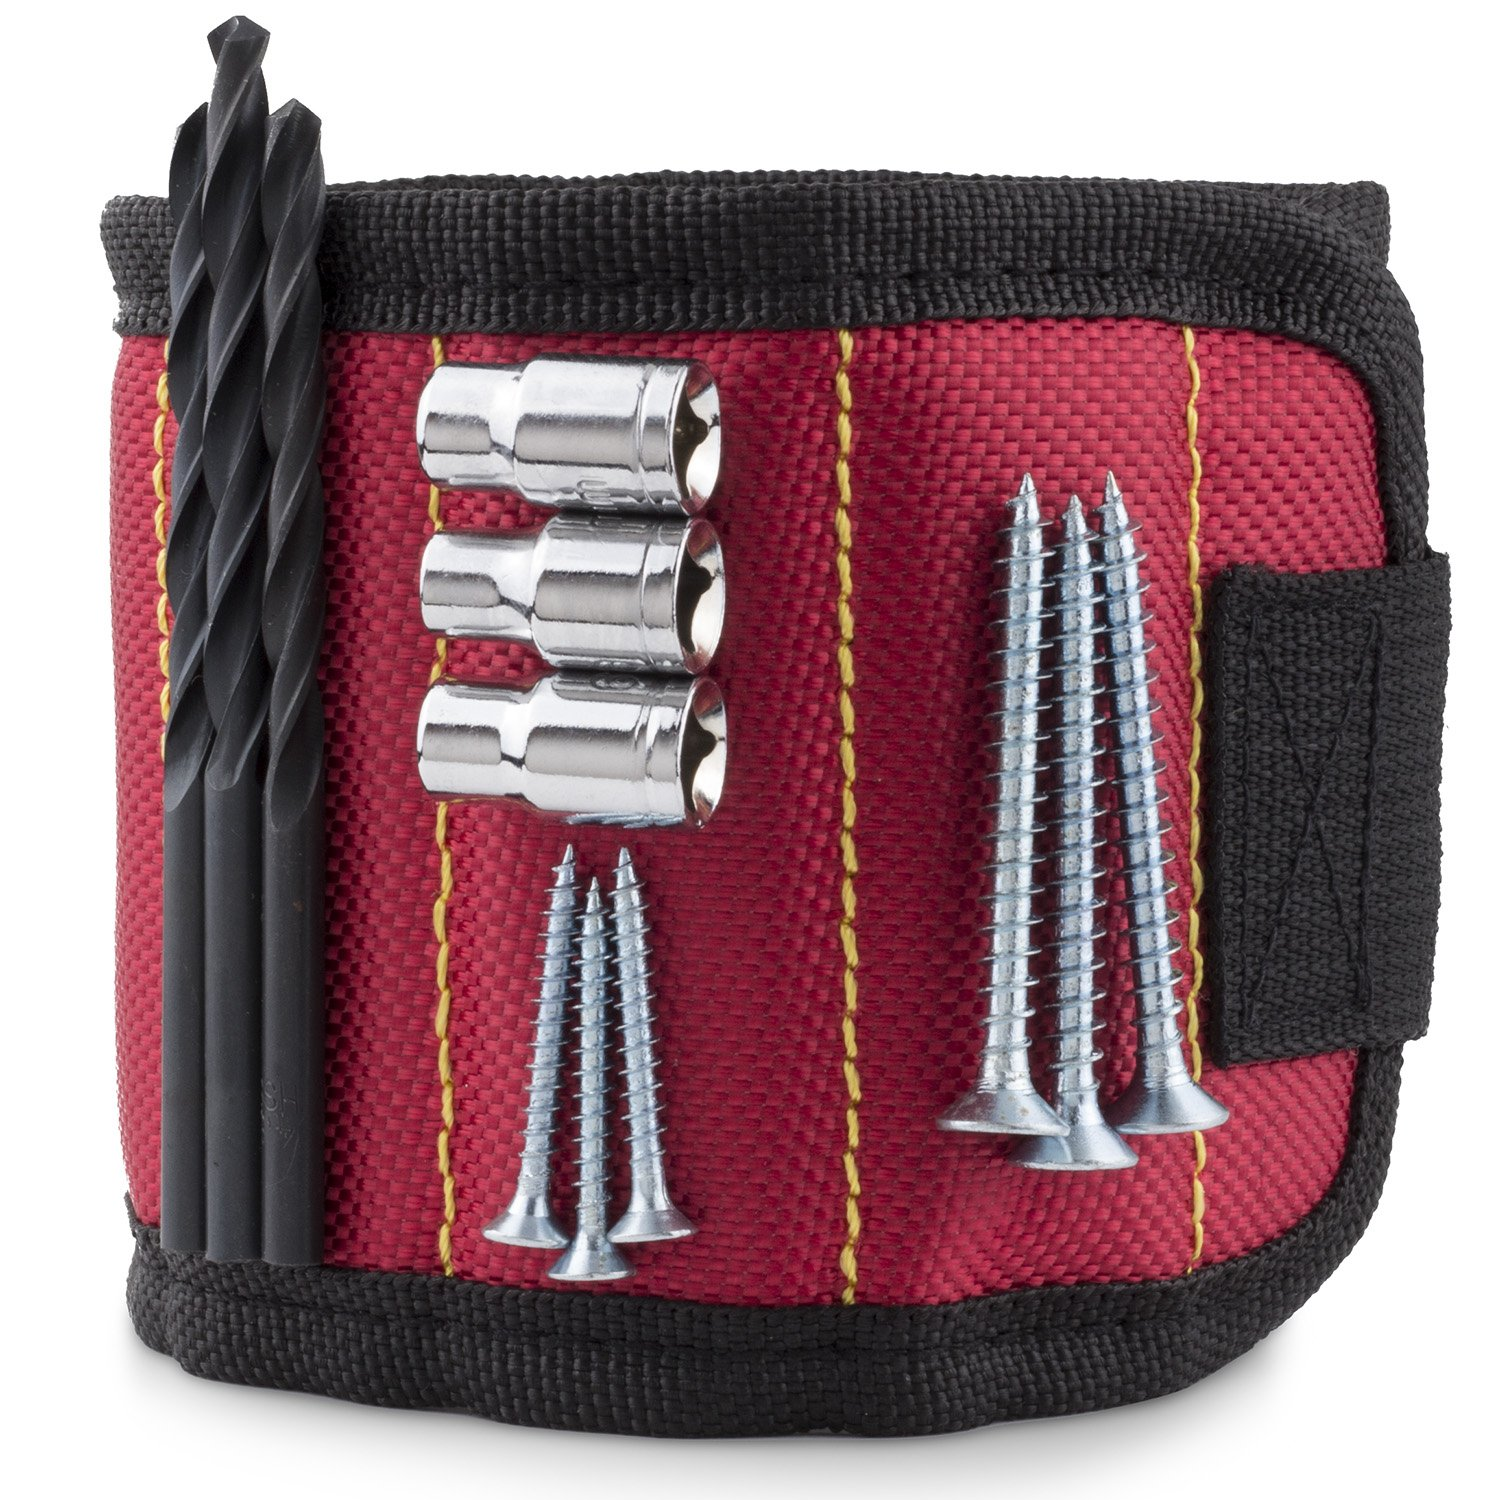 STEVEN G Magnetic Adjustable Size Wristband for Holding Screws, Nails, Drill Bits, Small Tools with 10 Strong Magnets Best Tool Gift for Professional or DIY Handy Man or Woman at Home or Work, Red by STEVEN G (Image #8)